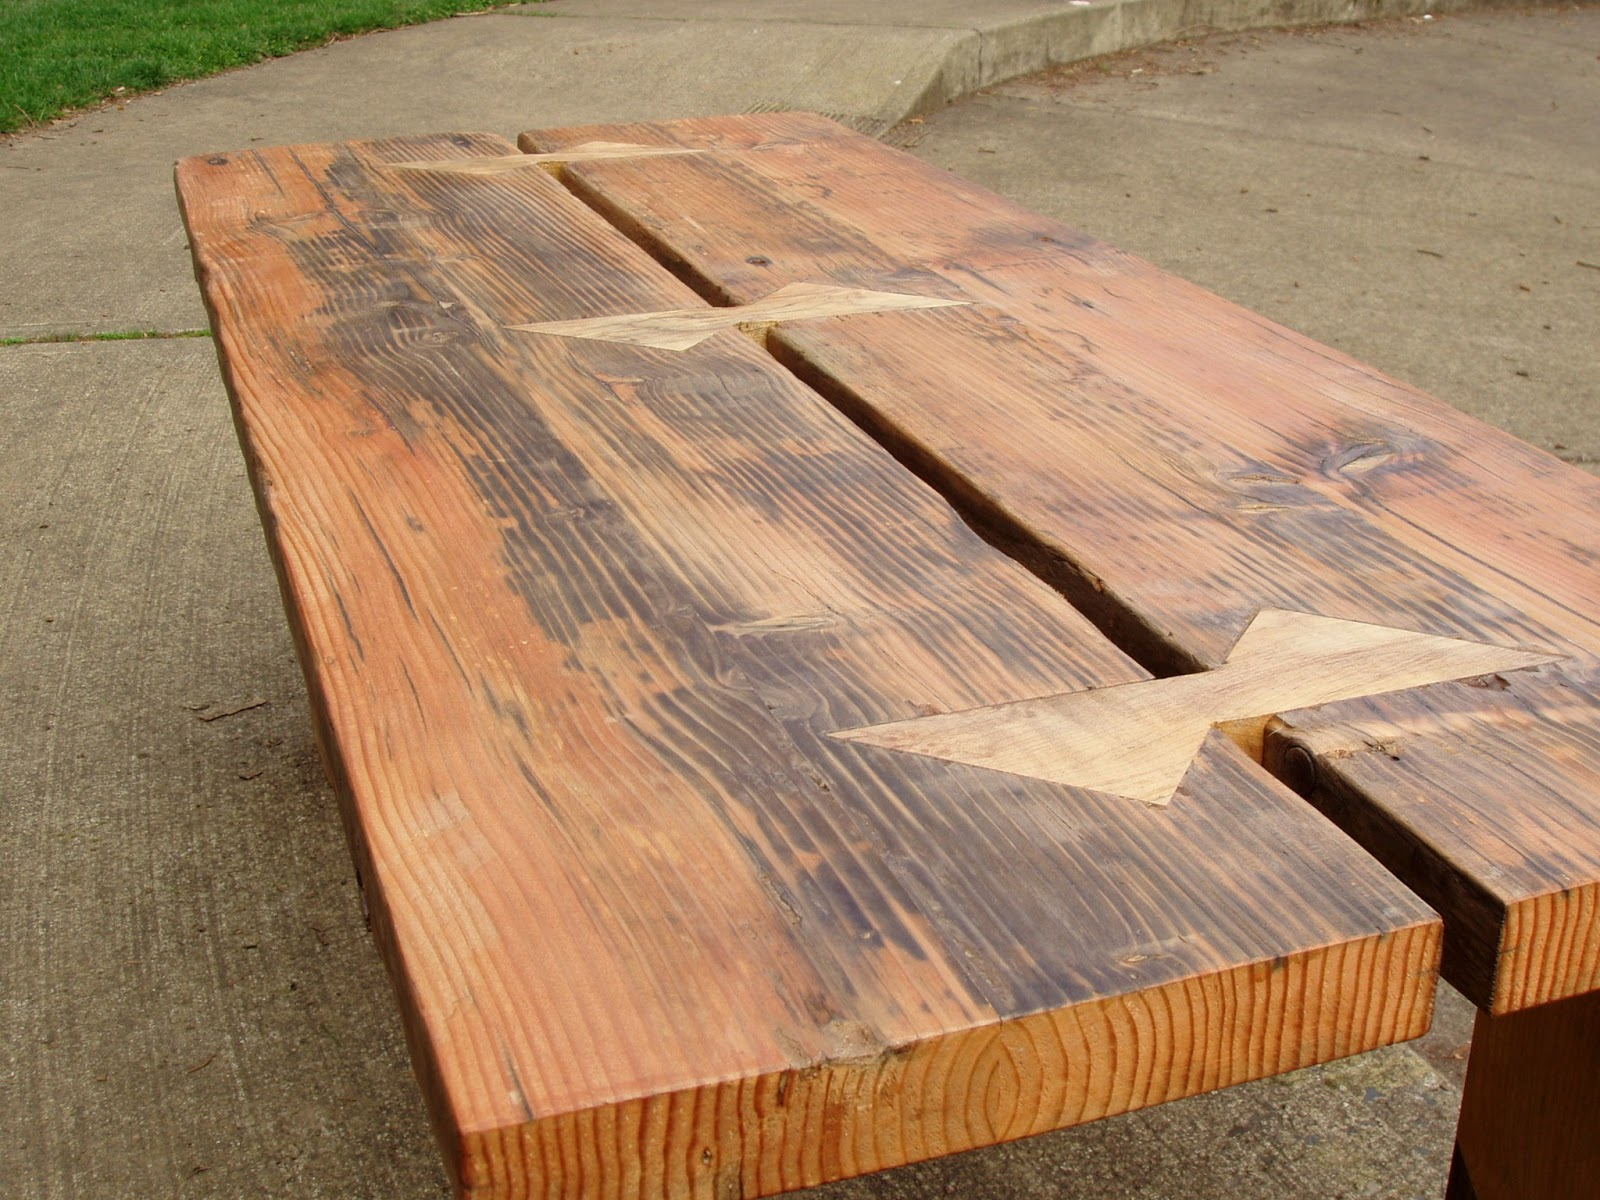 Pnw reclaimed wood furniture for Reclaimed wood portland oregon